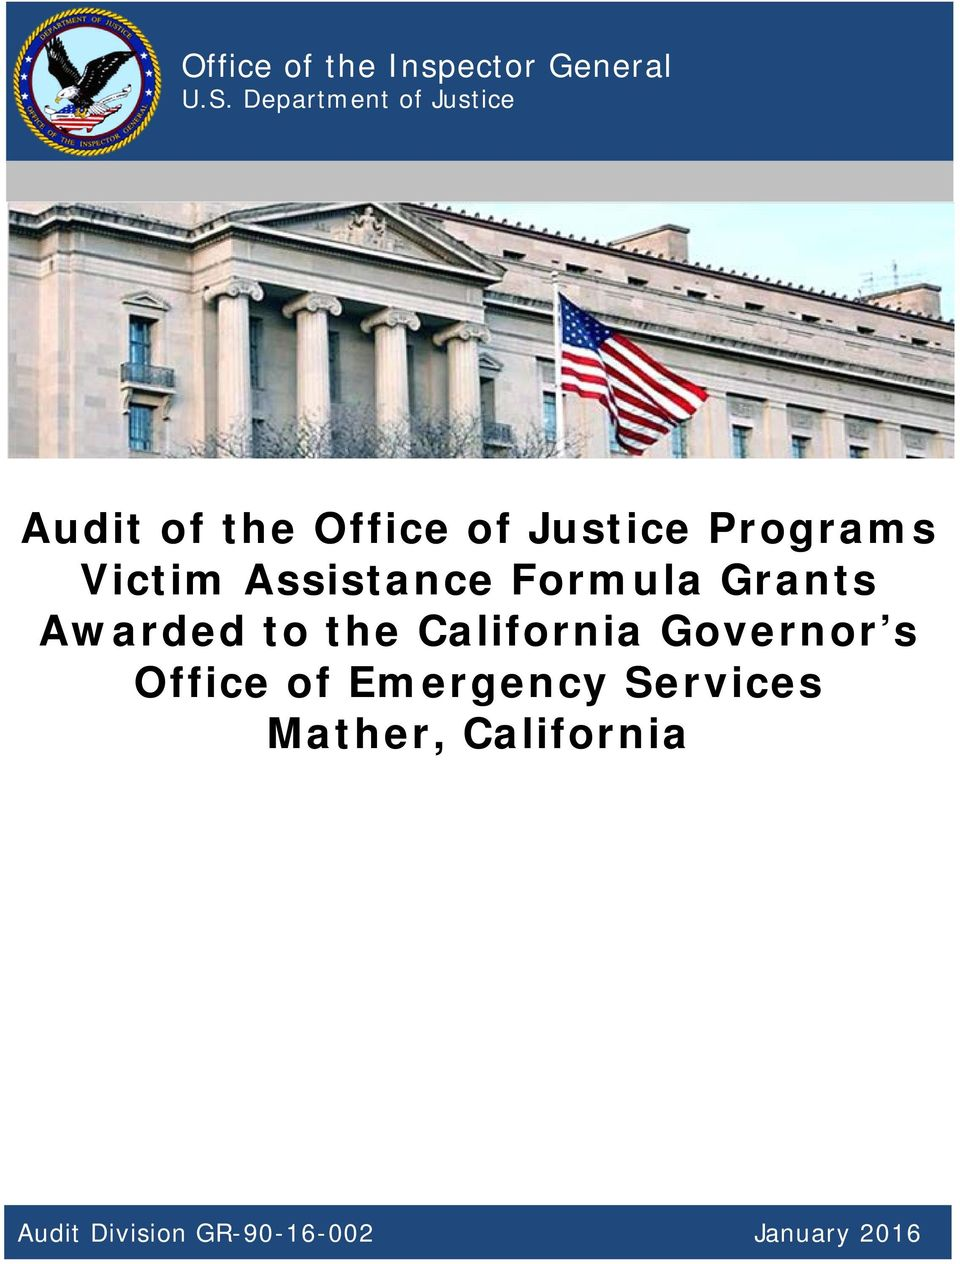 Victim Assistance Formula Grants Awarded to the California